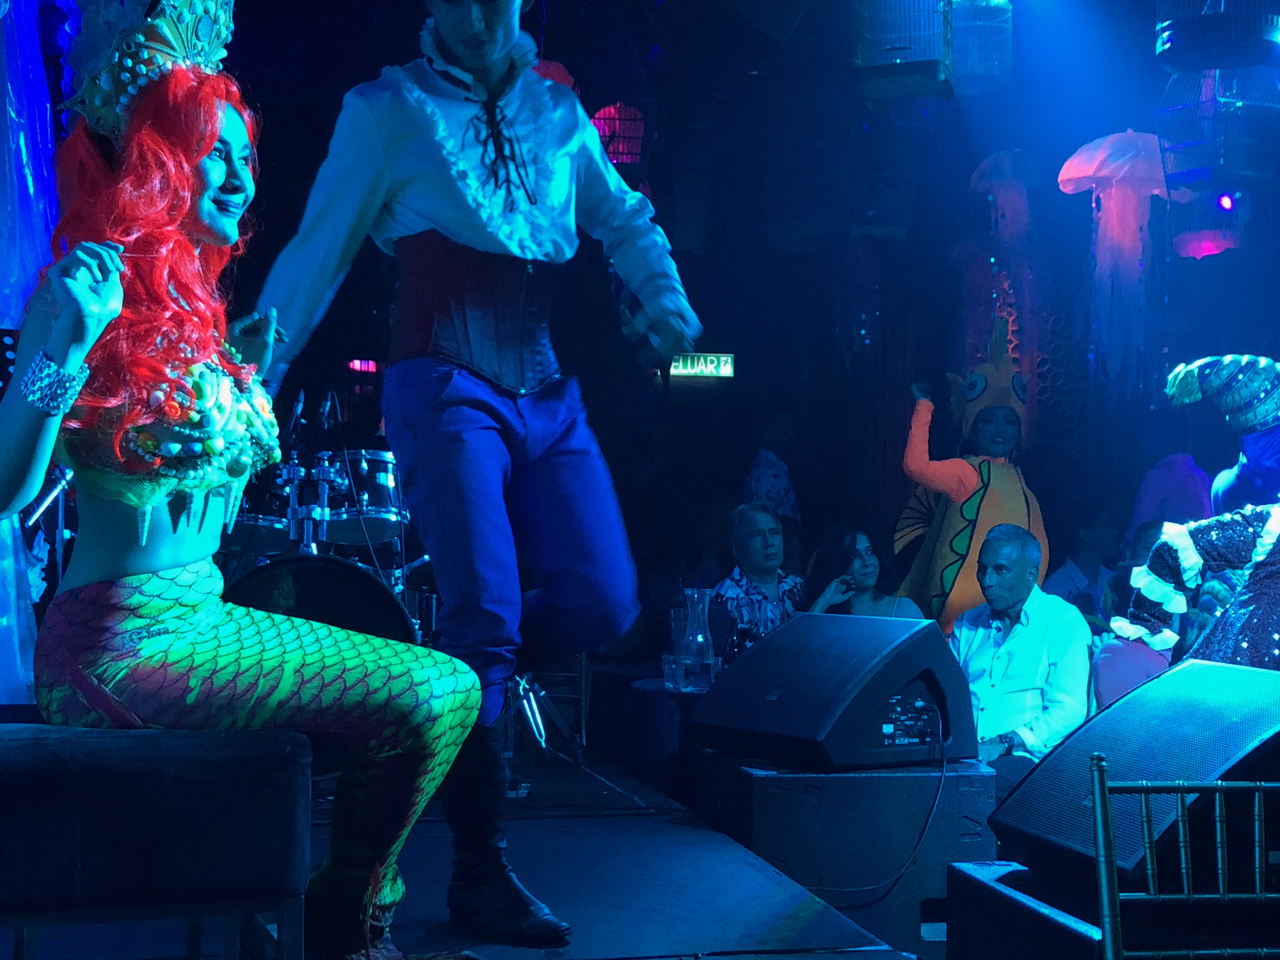 The Little Mermaid performing on stage at Suzie Wong's nightclub in KL